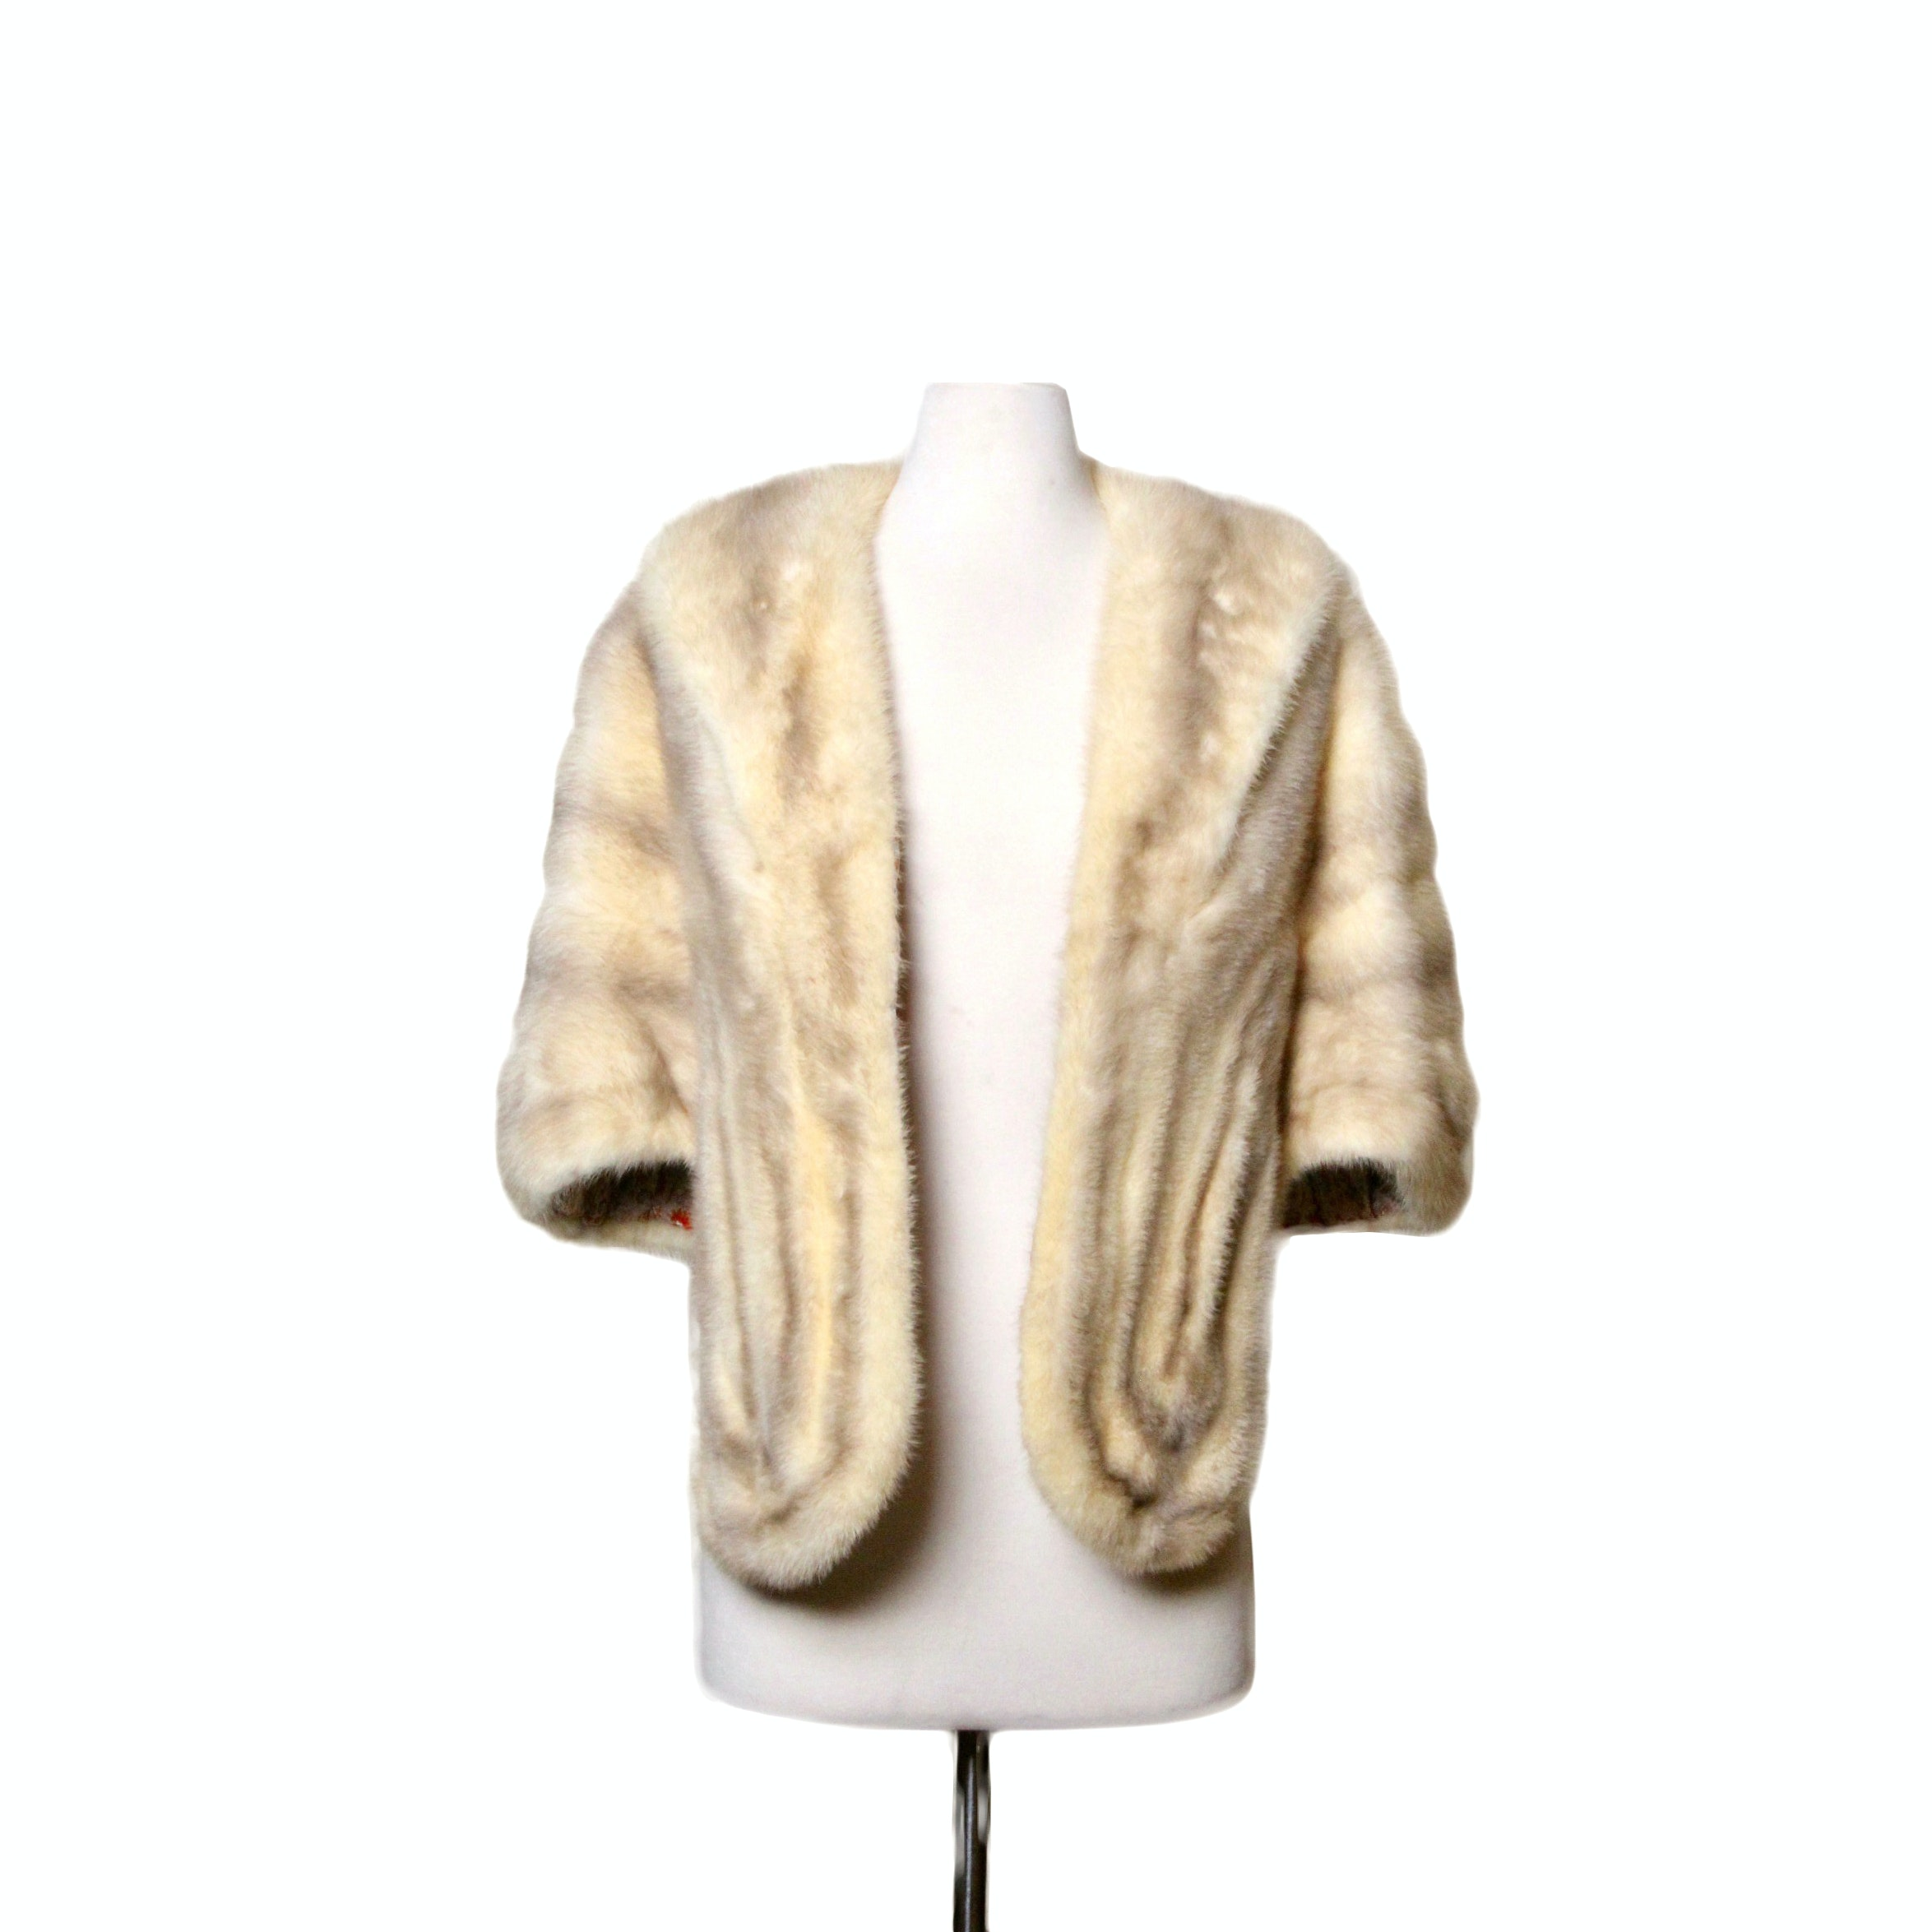 Silver-Tipped Mink Stole with Satin Lining